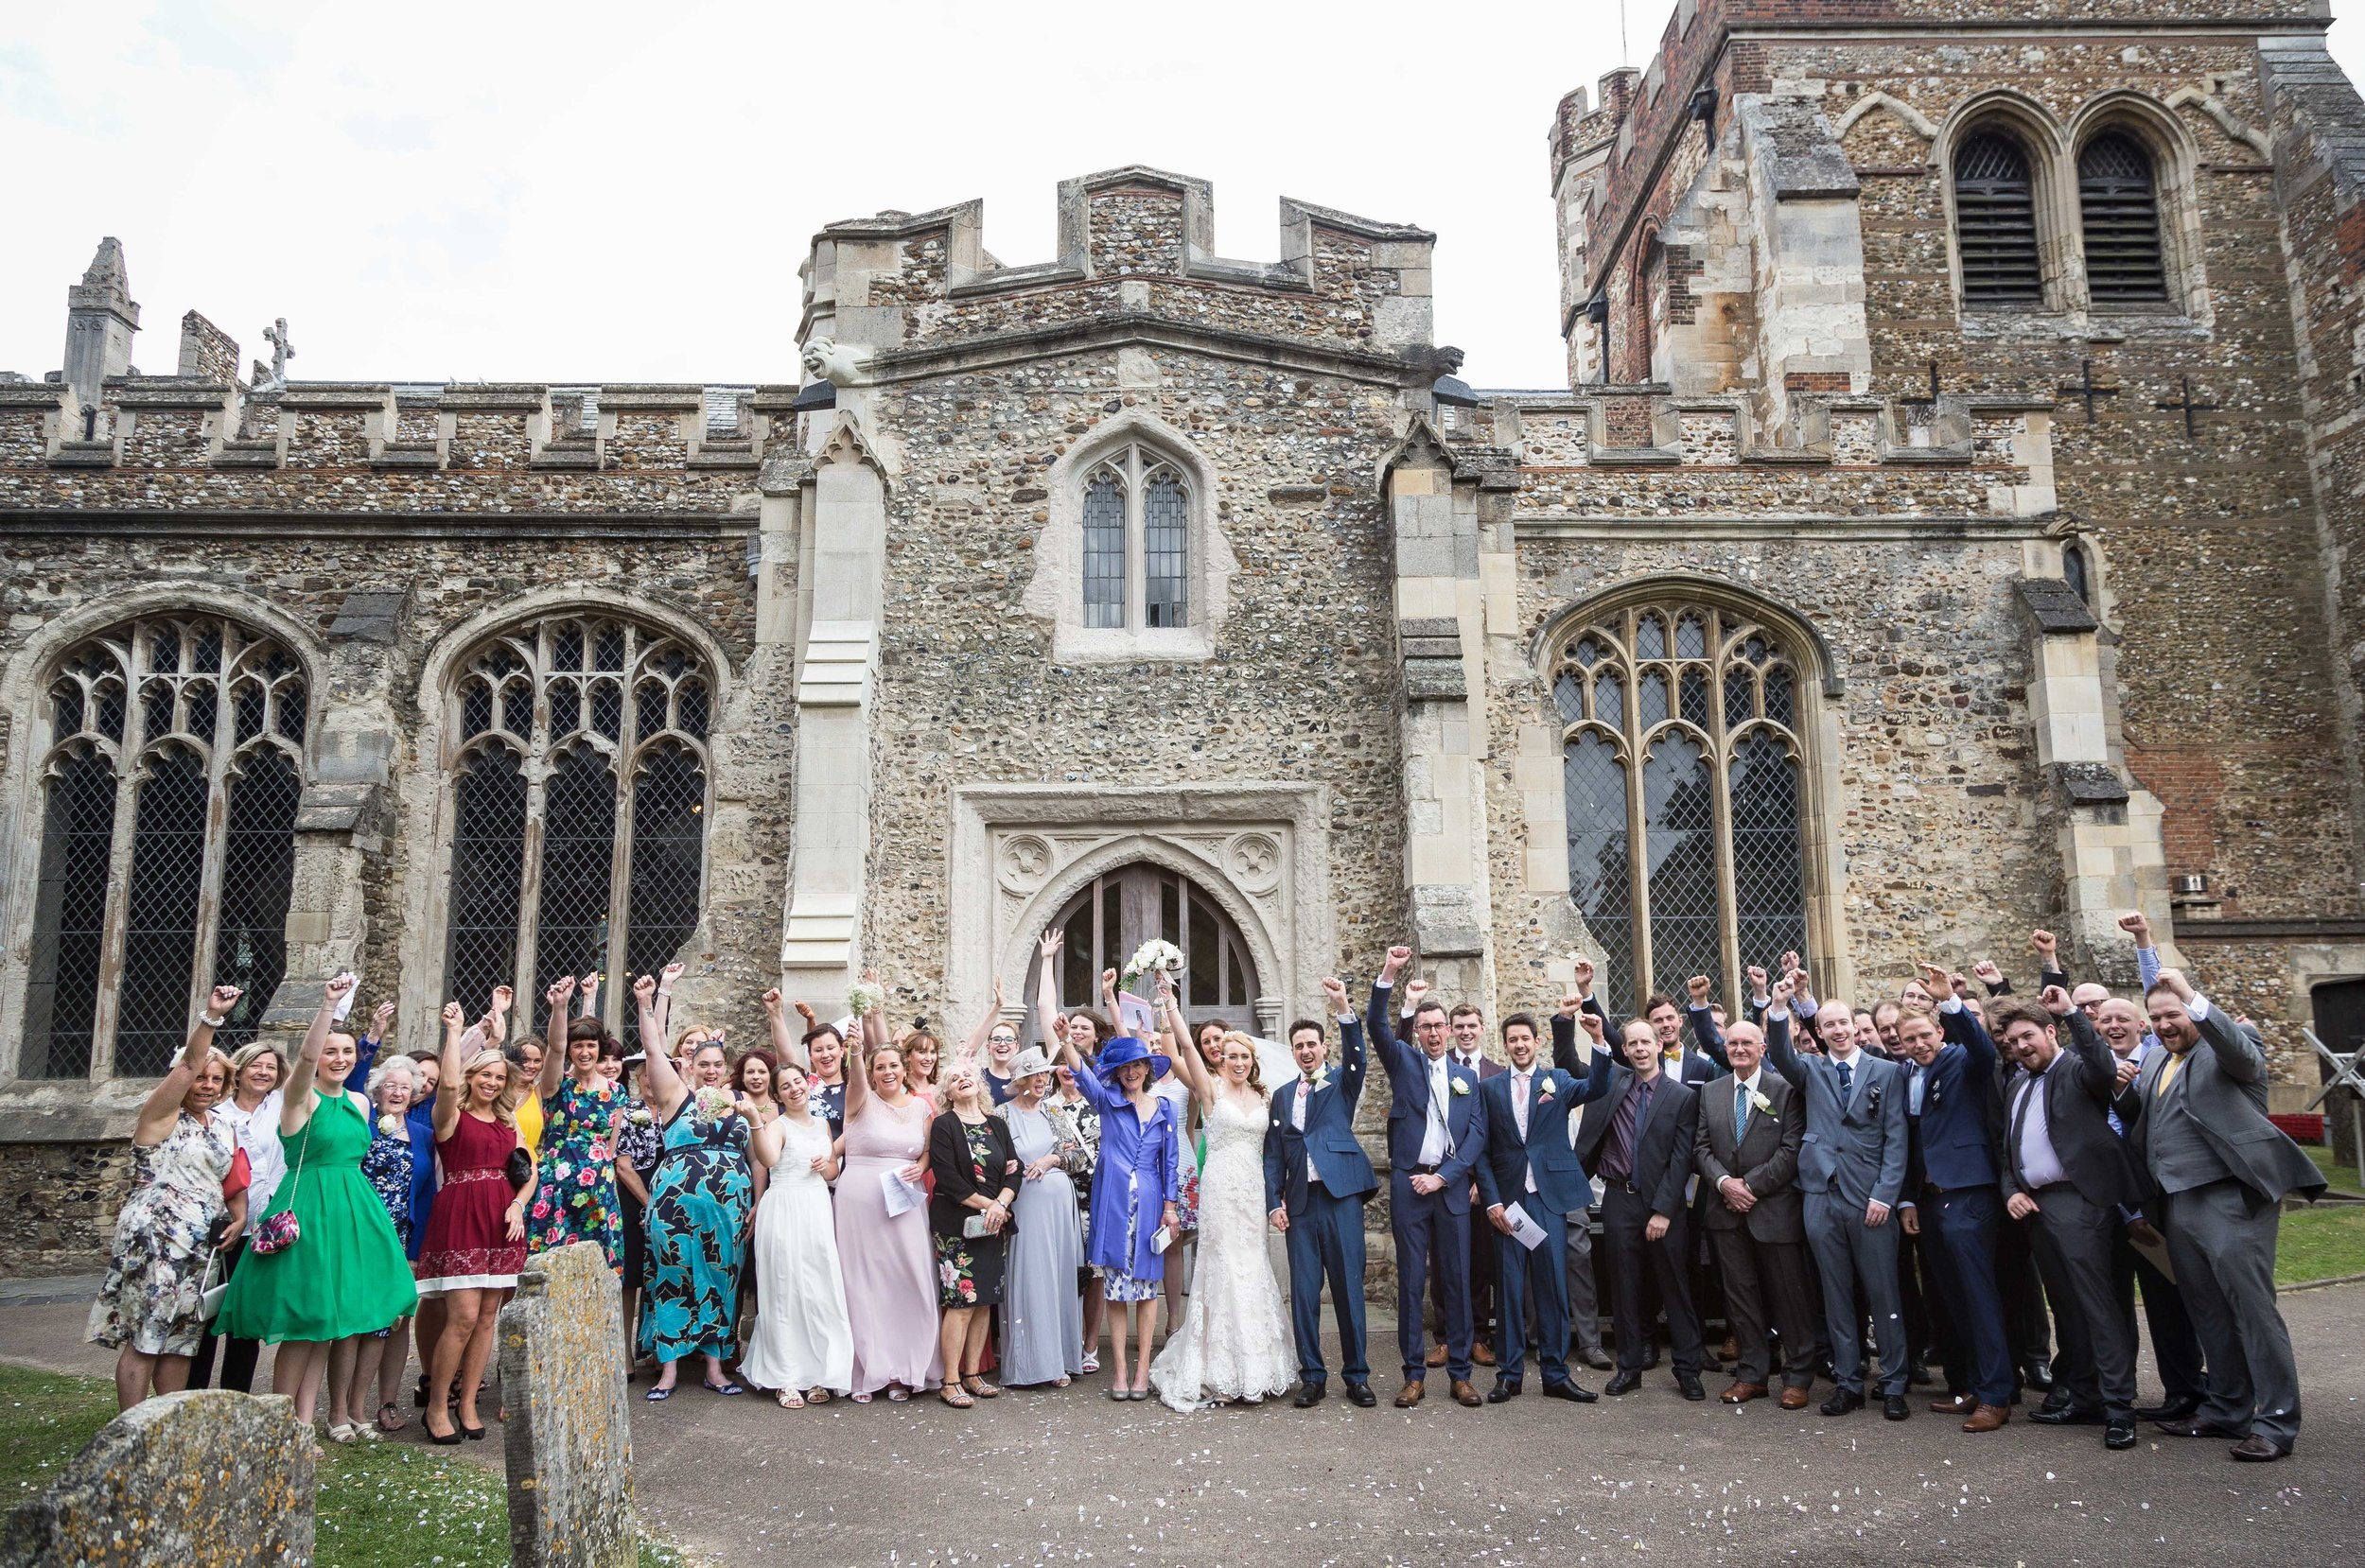 St-Mary's-church-Hitchin-herfordshire-wedding-group shot